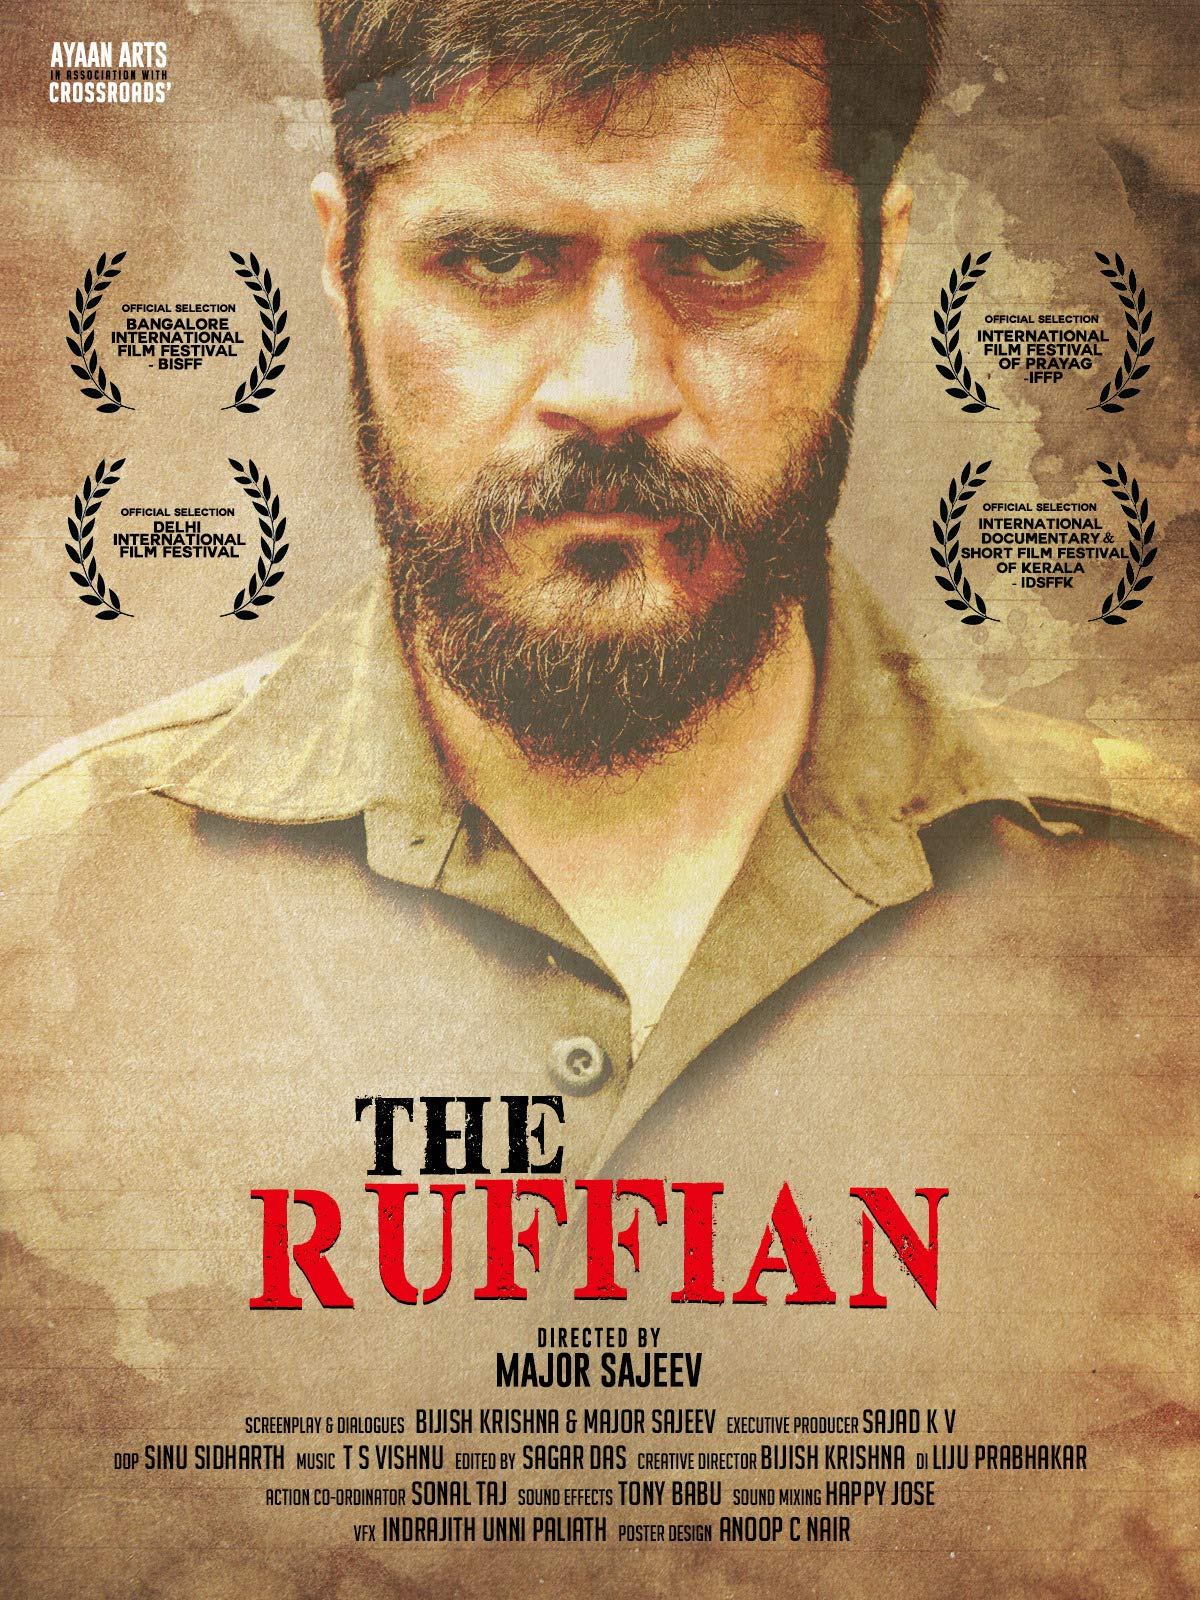 The Ruffian